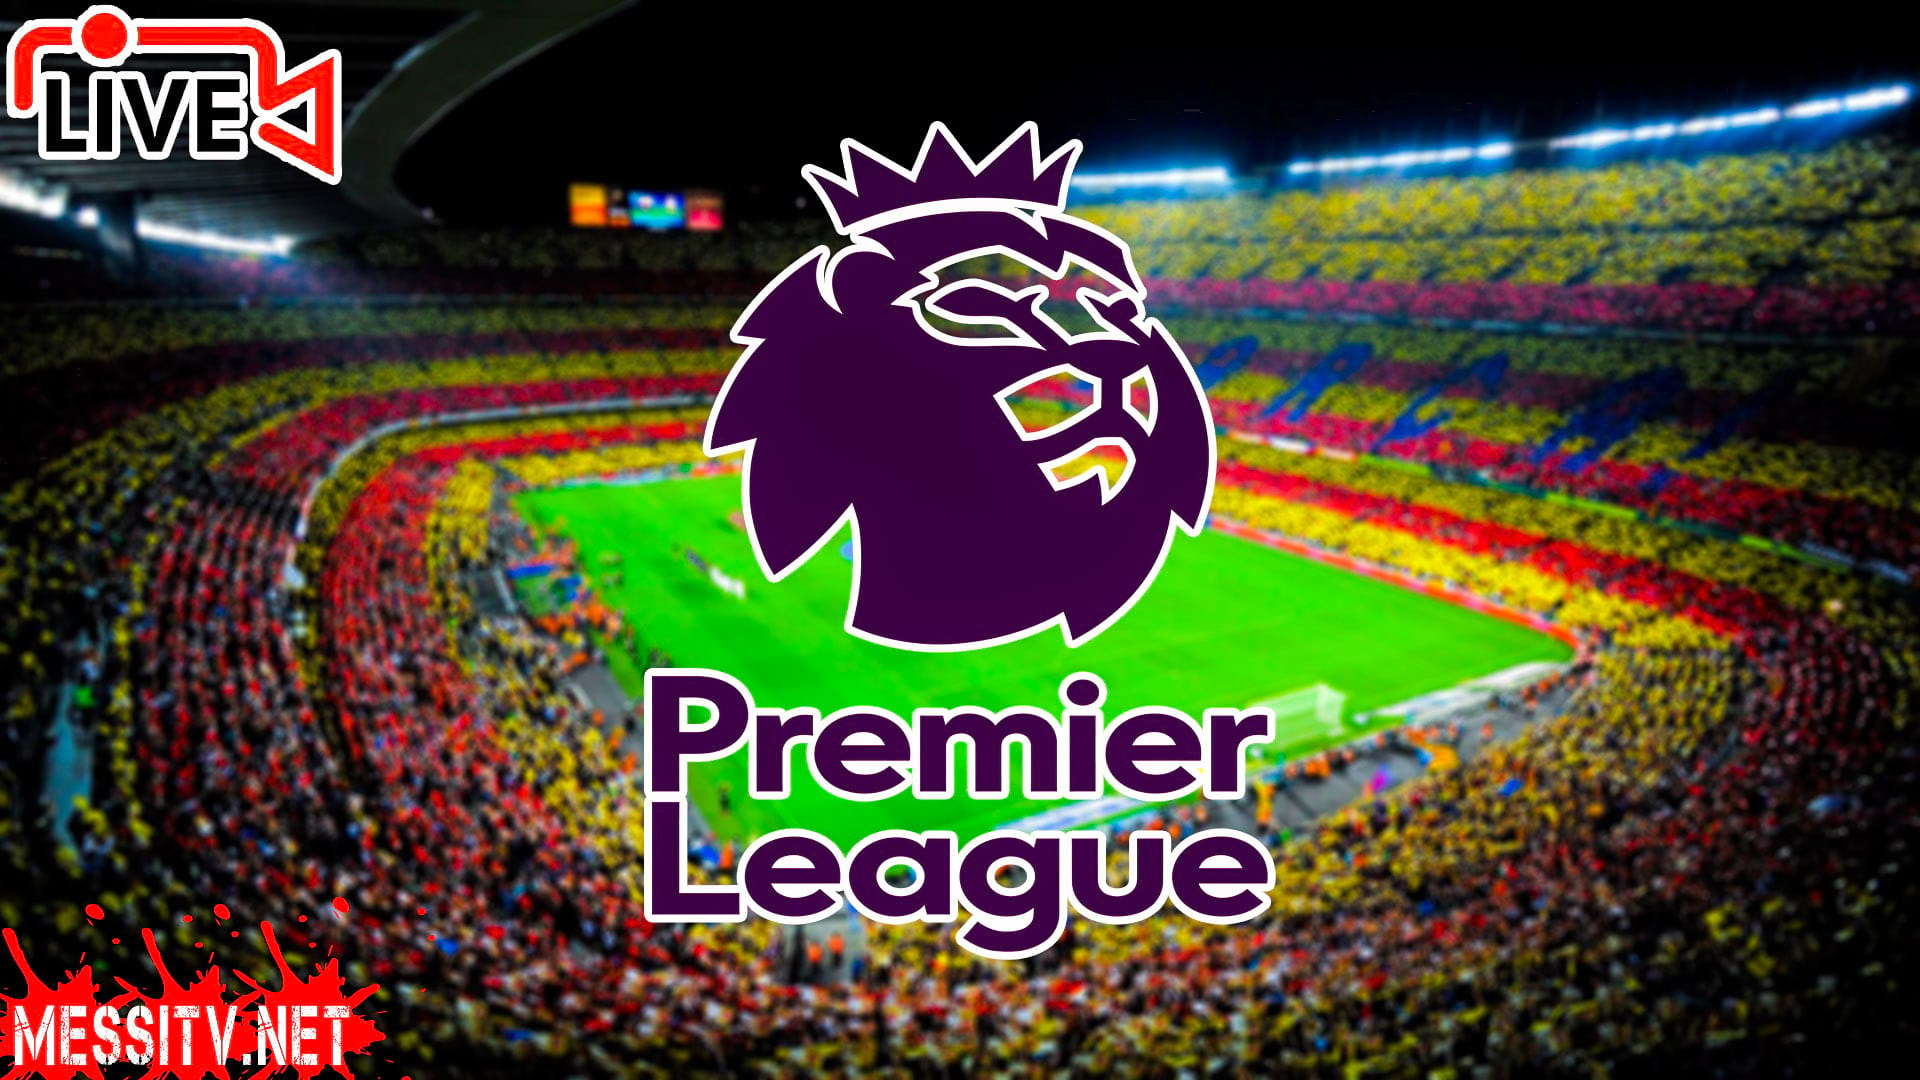 Watch All England Premier League Matches Live Stream Online [Full HD + 4K + Support Mobile], Watch Premier League live online, watch Football live online, watch West Ham United vs Manchester United live online, watch Brighton & Hove Albion vs Leicester City live online, watch Tottenham Hotspur vs Chelsea live online, Assistir Inglaterra Premier League ao vivo online, assistir futebol ao vivo online, assistir West Ham United vs Manchester United ao vivo online, Brighton & Hove Albion vs Leicester City ao vivo online, assistir Tottenham Hotspur vs Chelsea ao vivo online, England Premier League Goals & Highlights & FULL Match Replay HD, Manchester City, Man City, Man utd, Manchester United, Leicester City, Chelsea, West Ham United, Tottenham, Liverpool, Everton, Arsenal, Leeds United, Aston Villa, Wolverhampton, Crystal Palace, Southampton, Newcastle United, Brighton & Hove Albion, Burnley, Fulham, West Bromwich Albion, Sheffield United